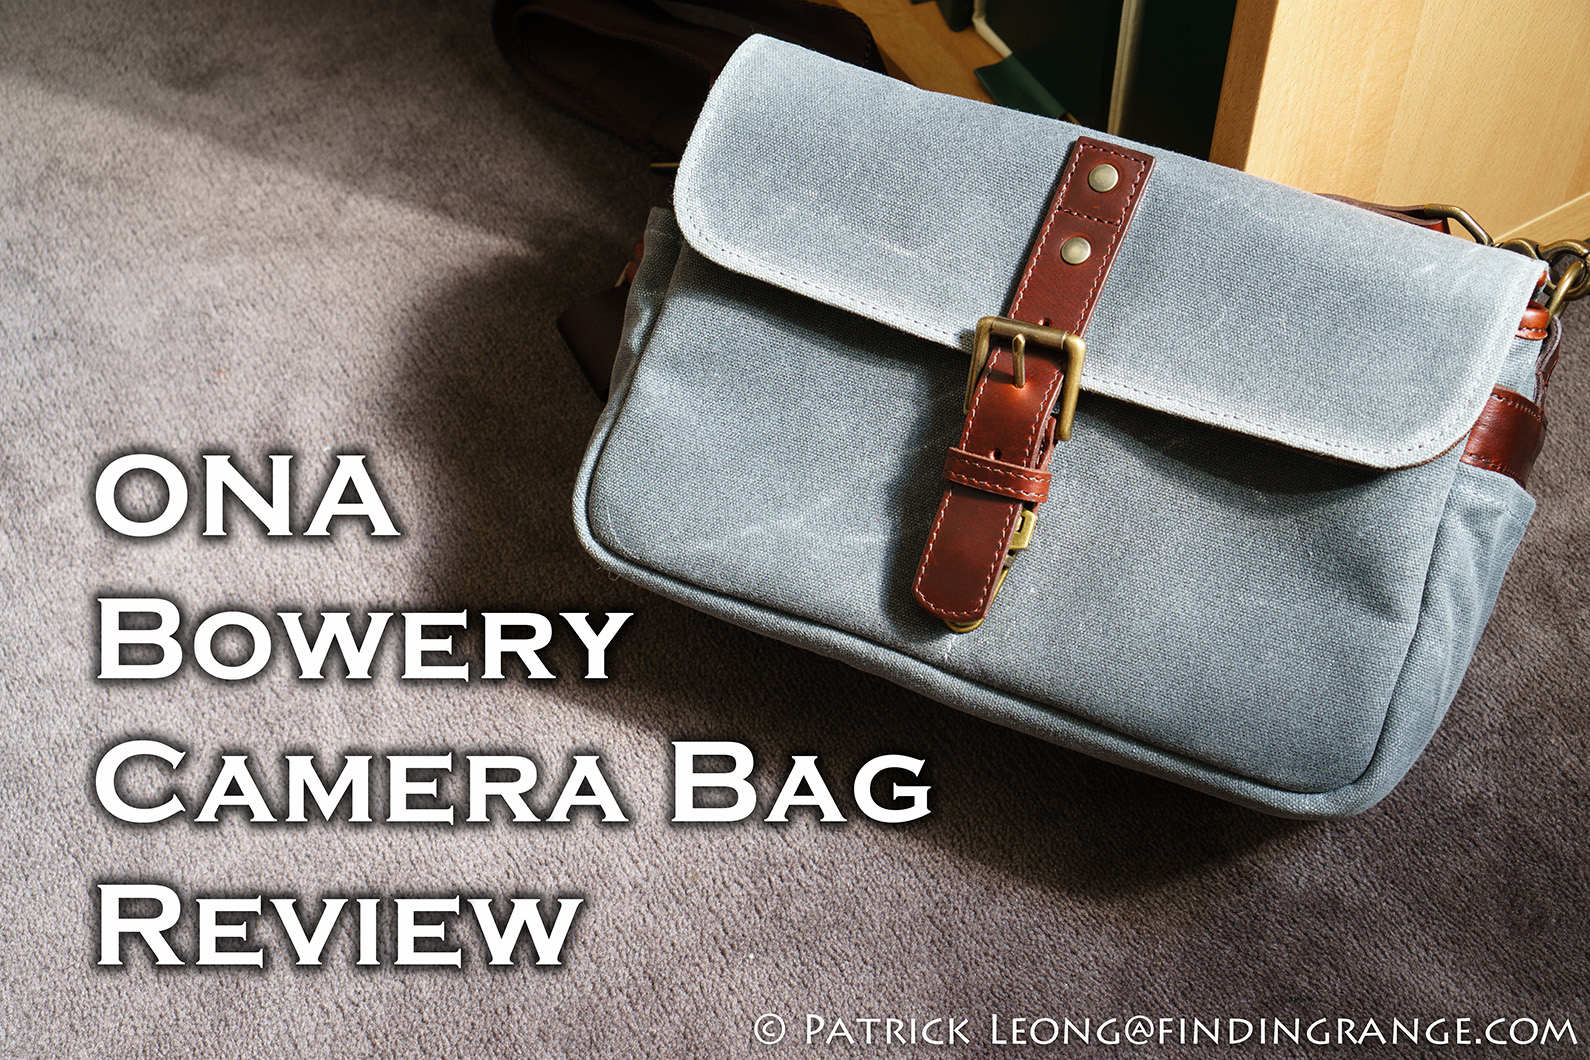 ONA-Bowery-Camera-Bag-Review-1